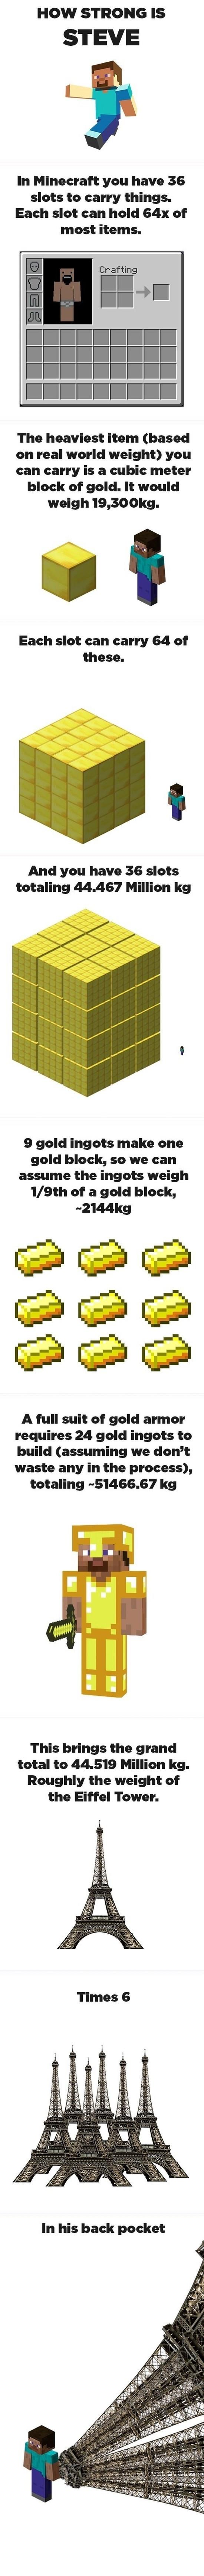 Mindcraft Logic